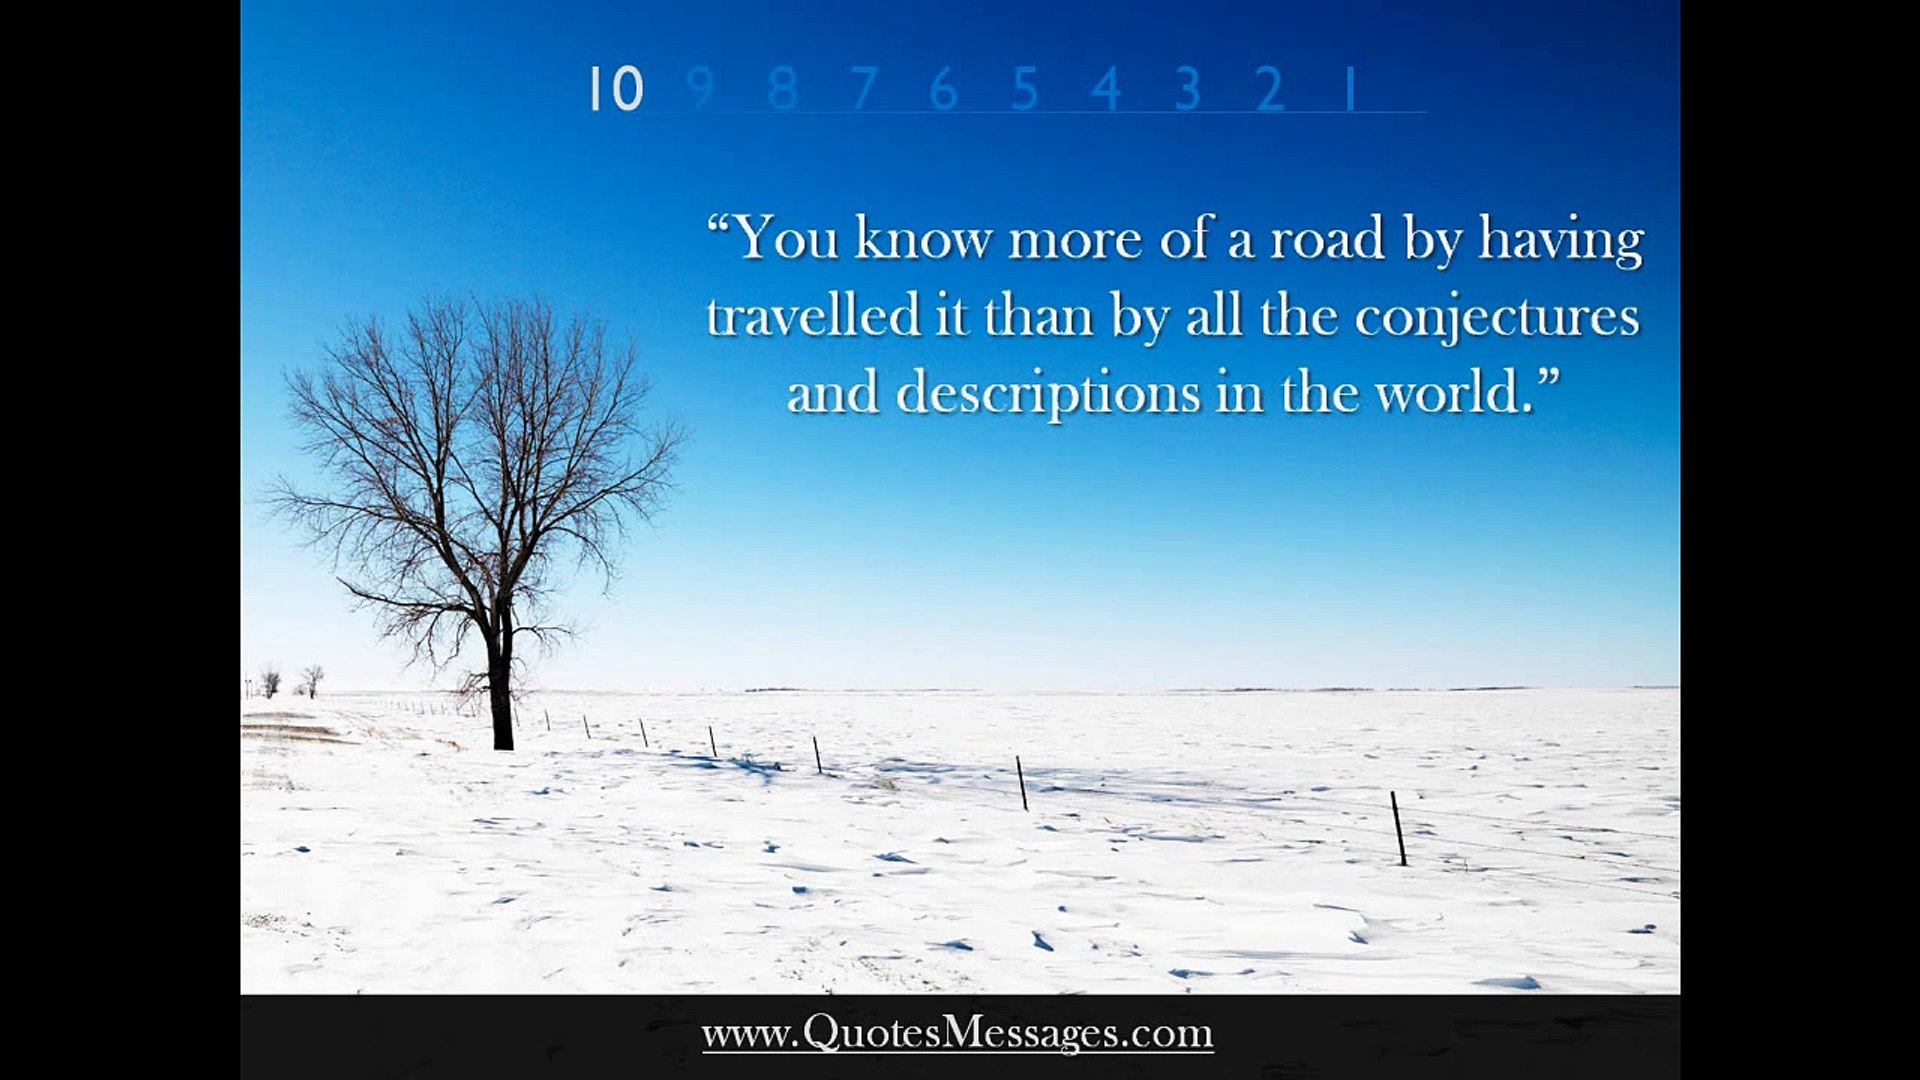 Timeless Travel Quotes - Top 10 Travel Quotes